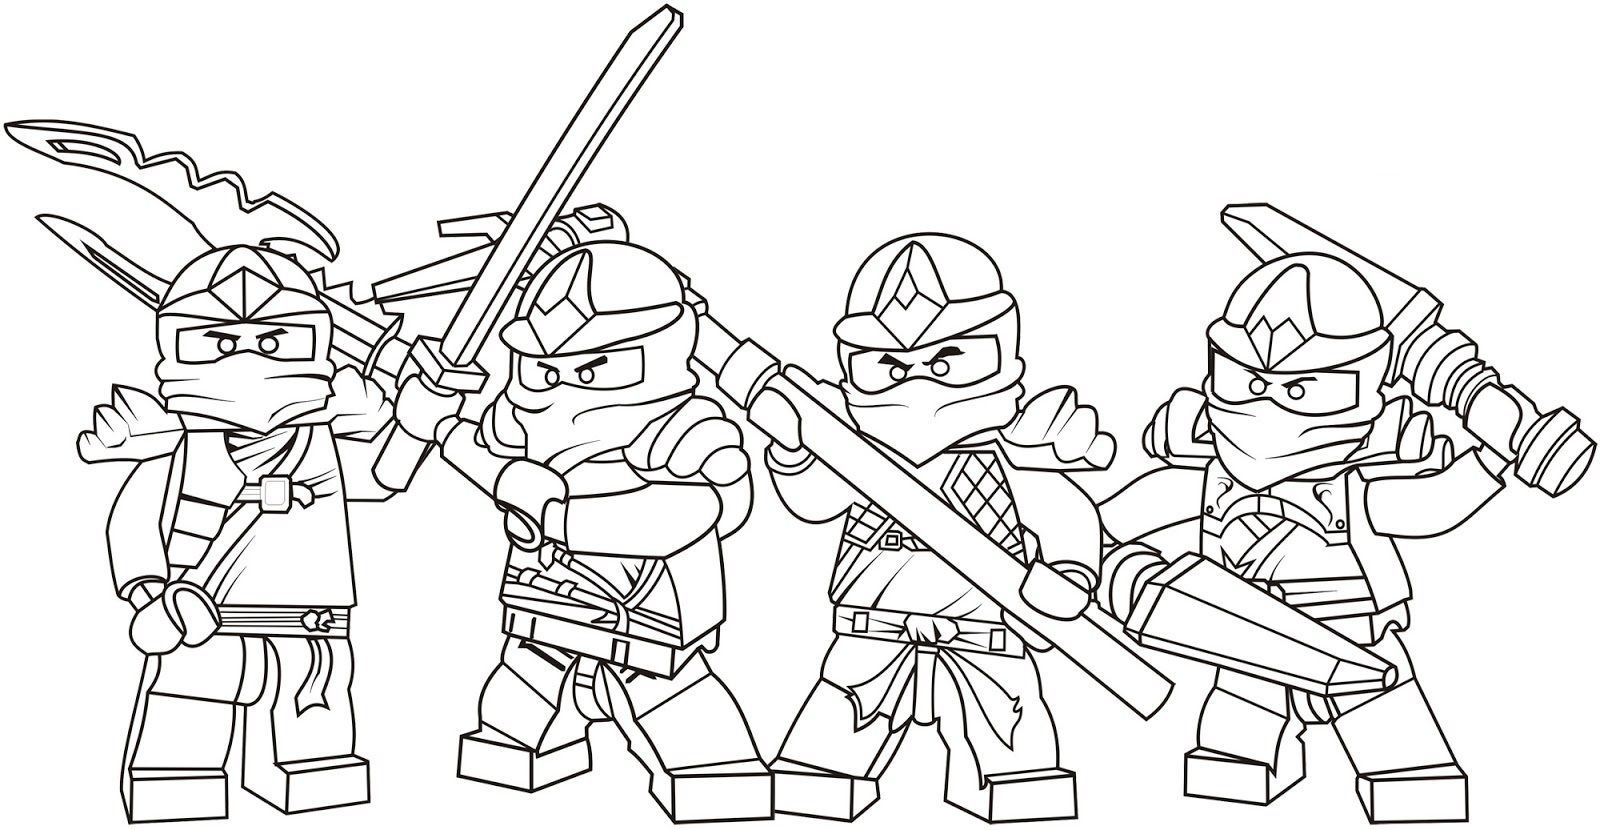 Ninja Coloring Pages: Here is our collection of best 21 ninja